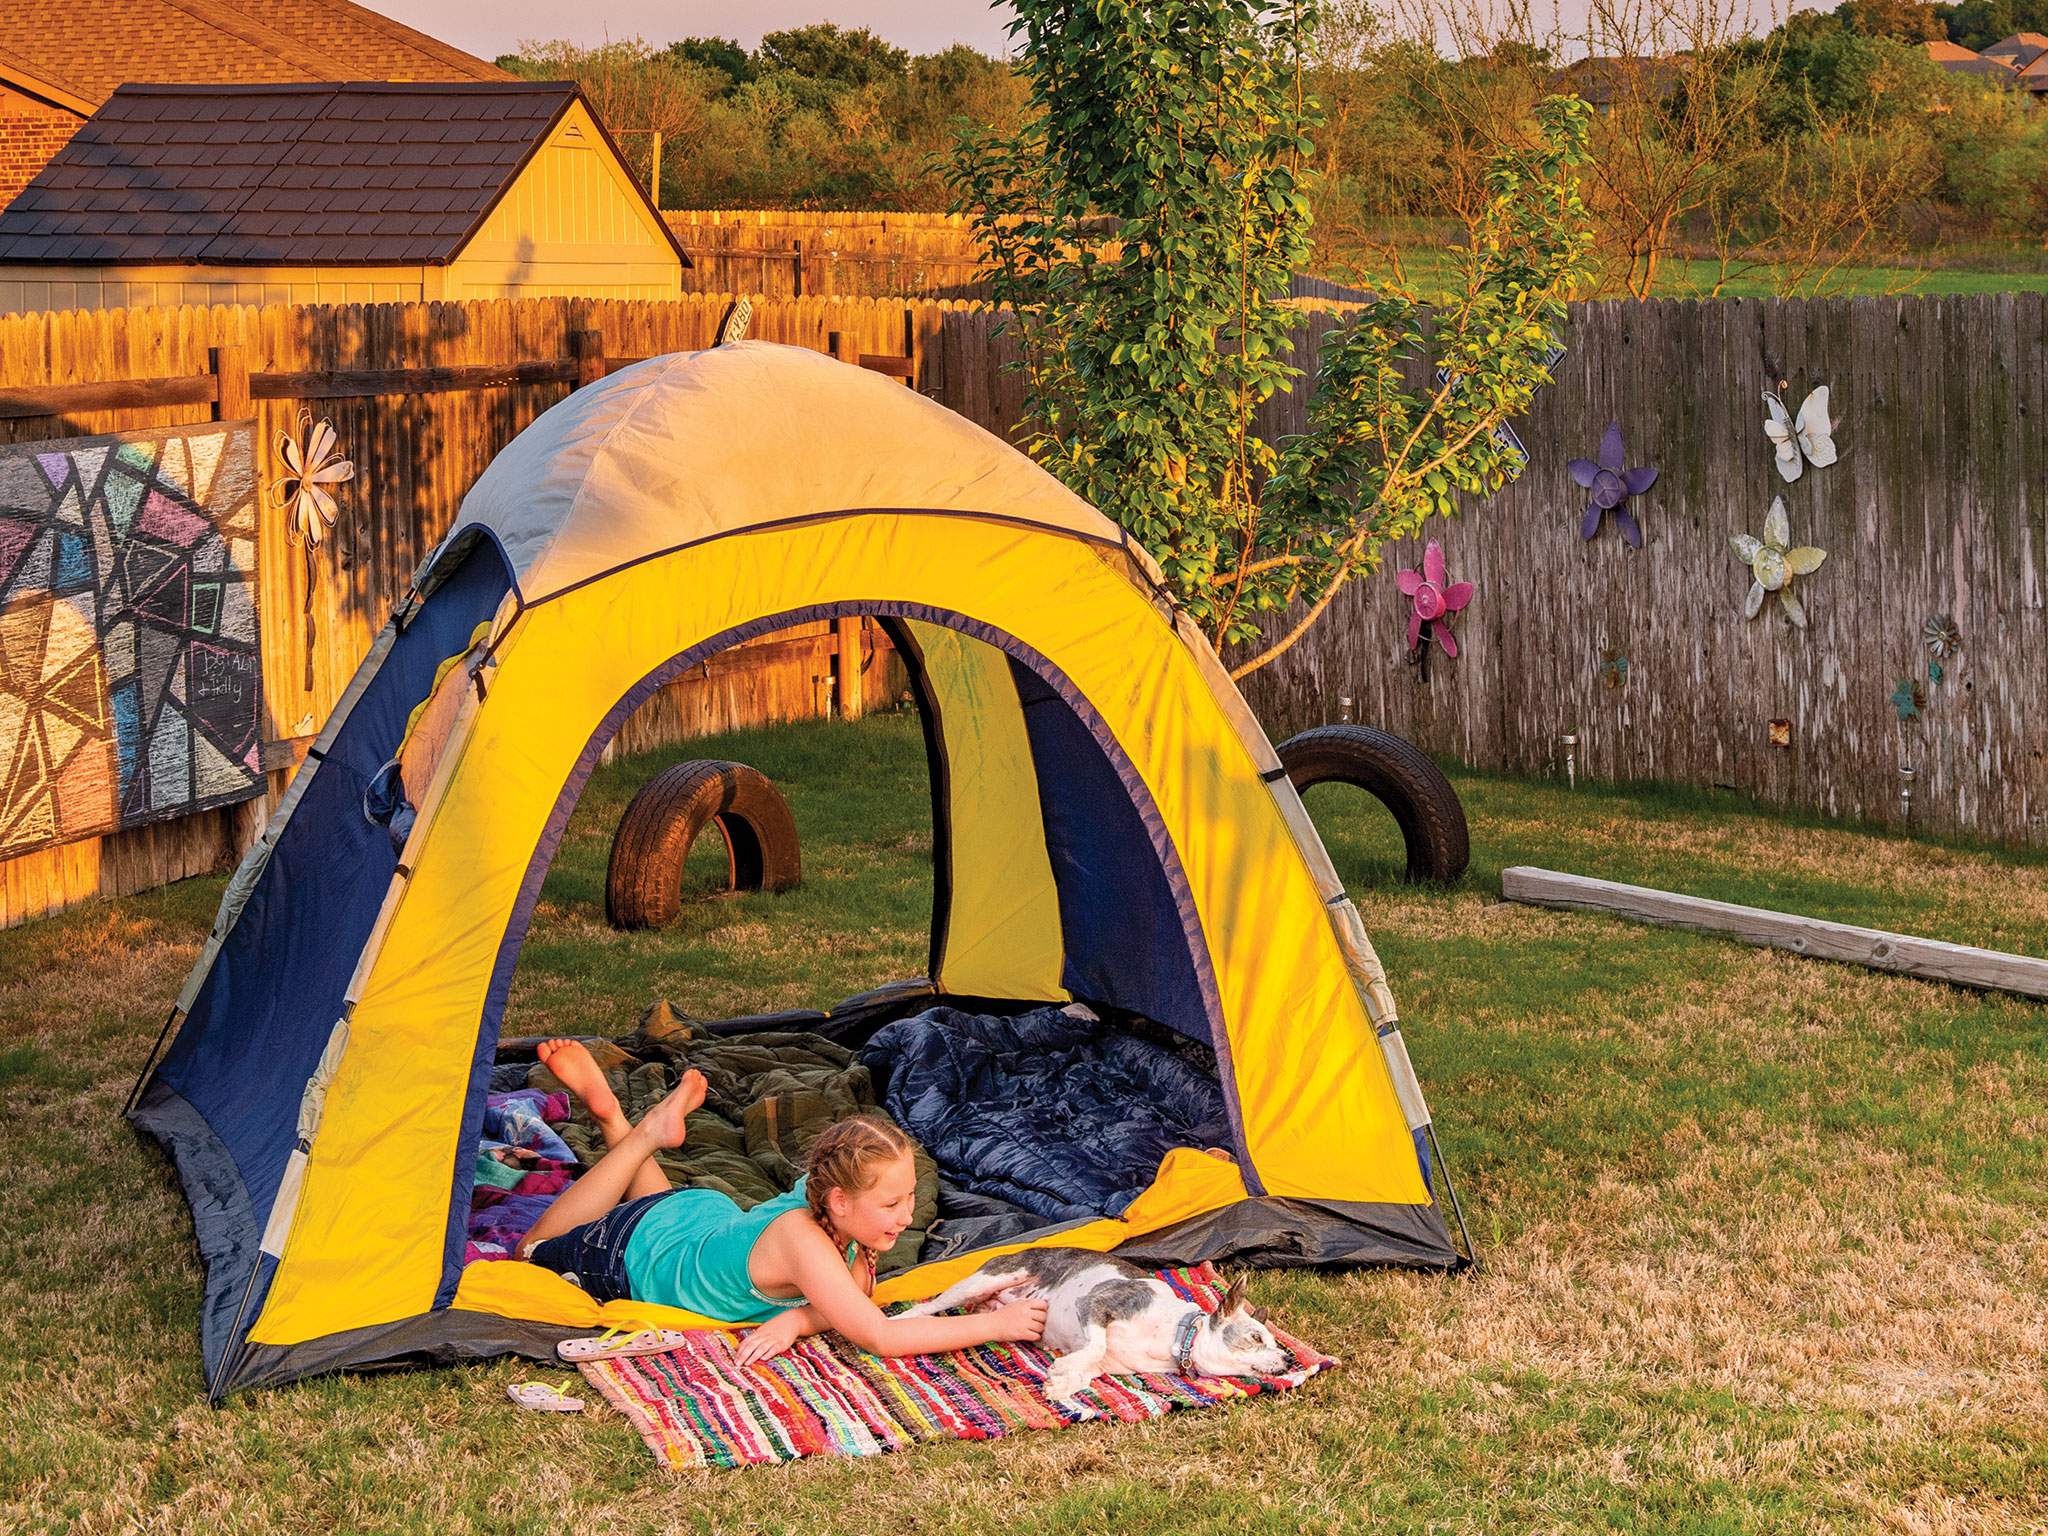 Camping in Your Own Backyard|May 2020| TPW magazine